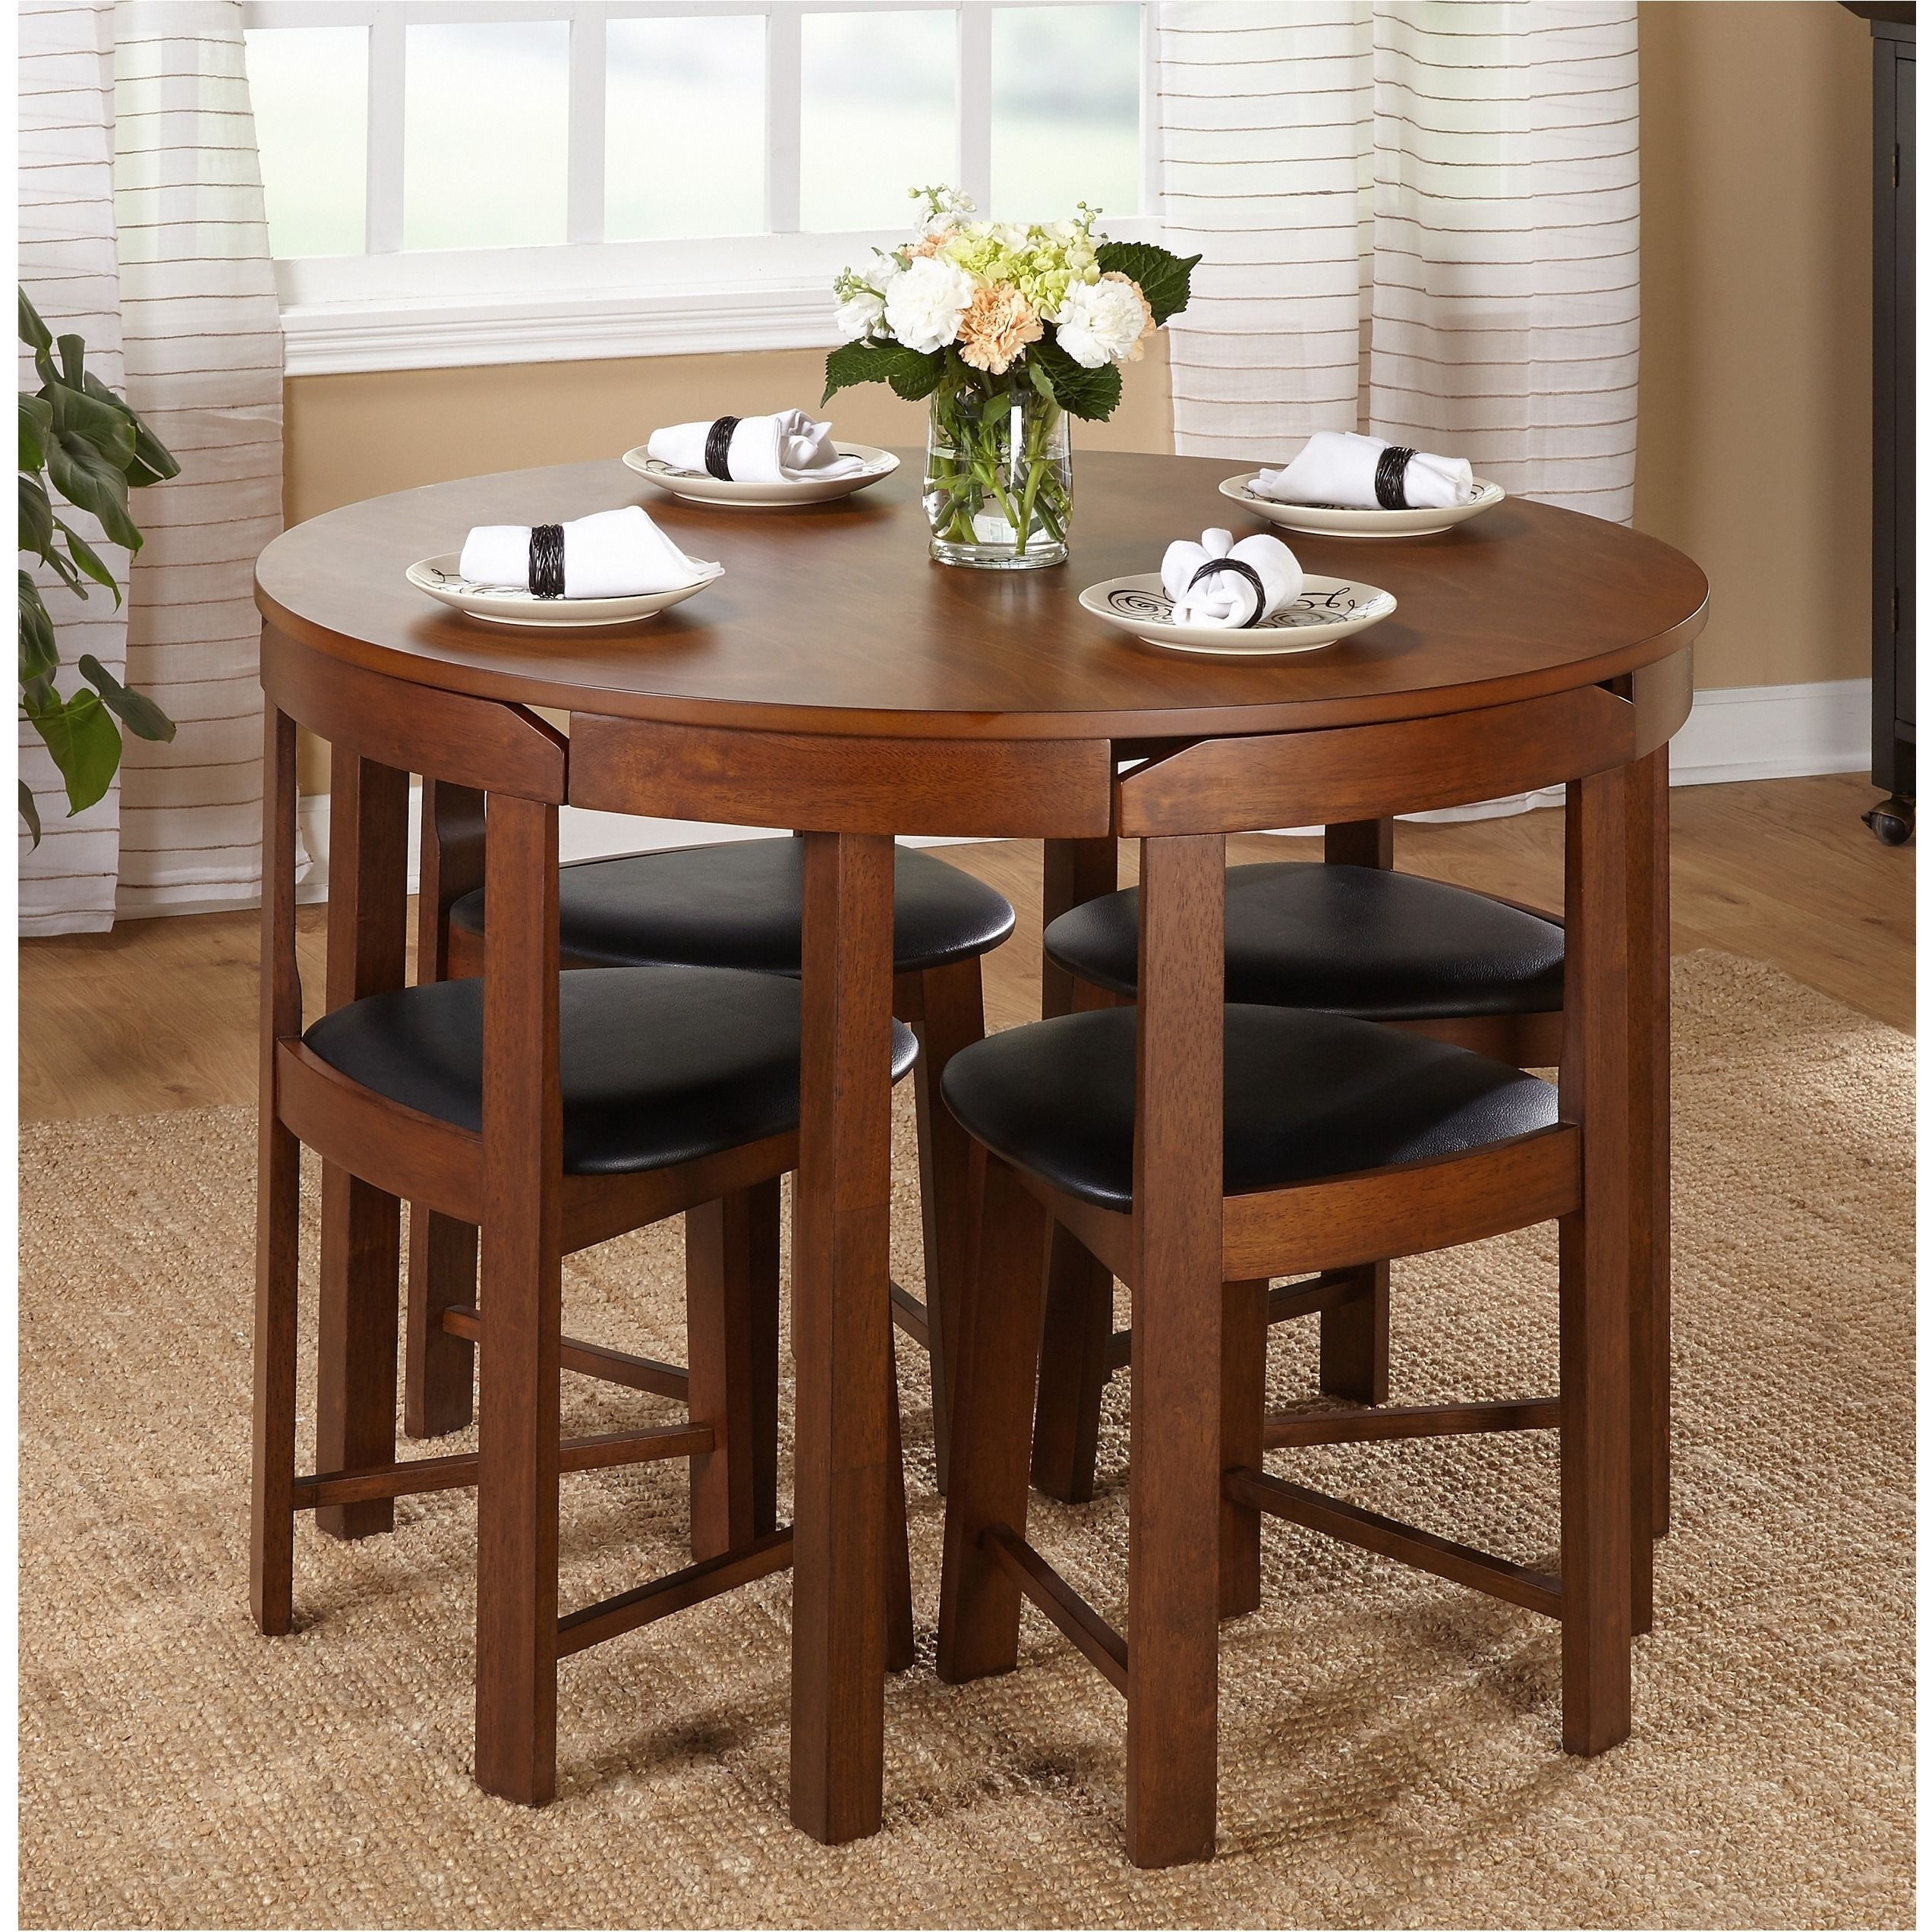 Small Round White Dining Tables Intended For Popular Marvelous Furniture Small Round Glass Dining Table Sets With Leaves (View 14 of 25)